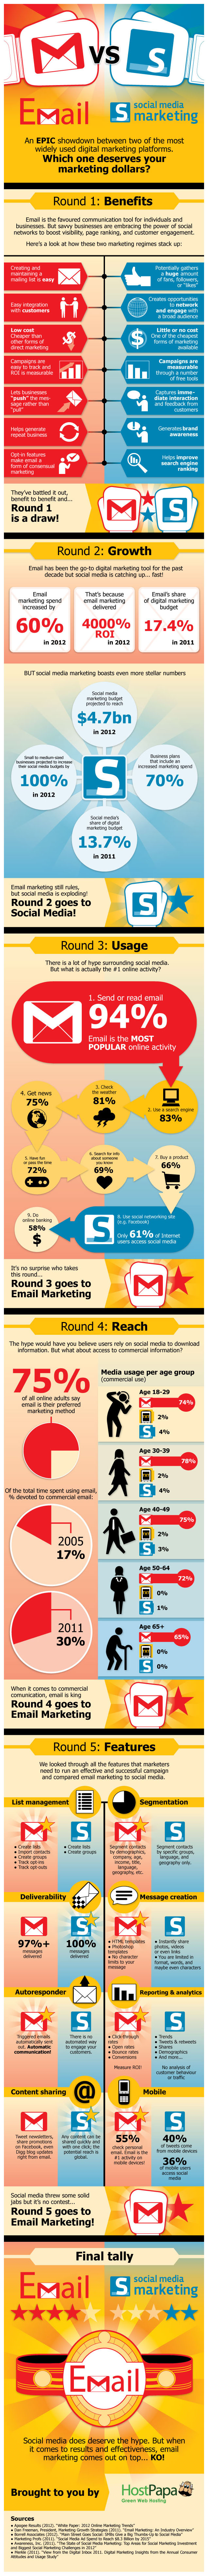 Email Marketing Knocks Out Social Media in 5 Rounds 1